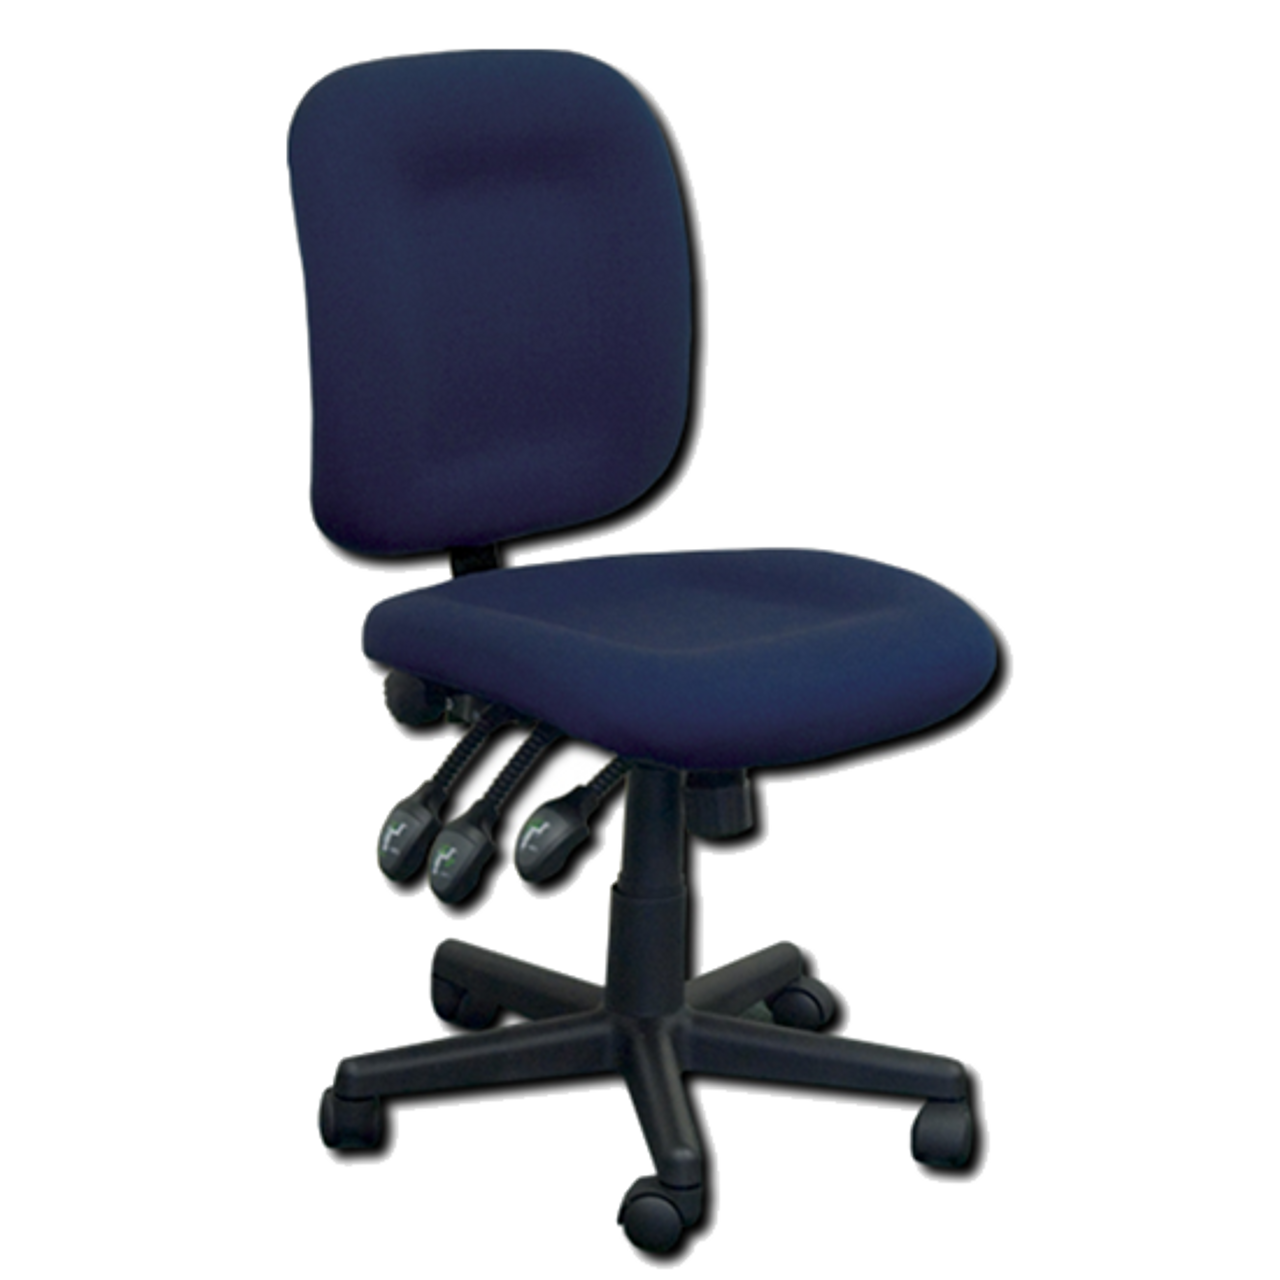 Horn Of America Sewing Chair 12090 Blue Upholstery With Black Base